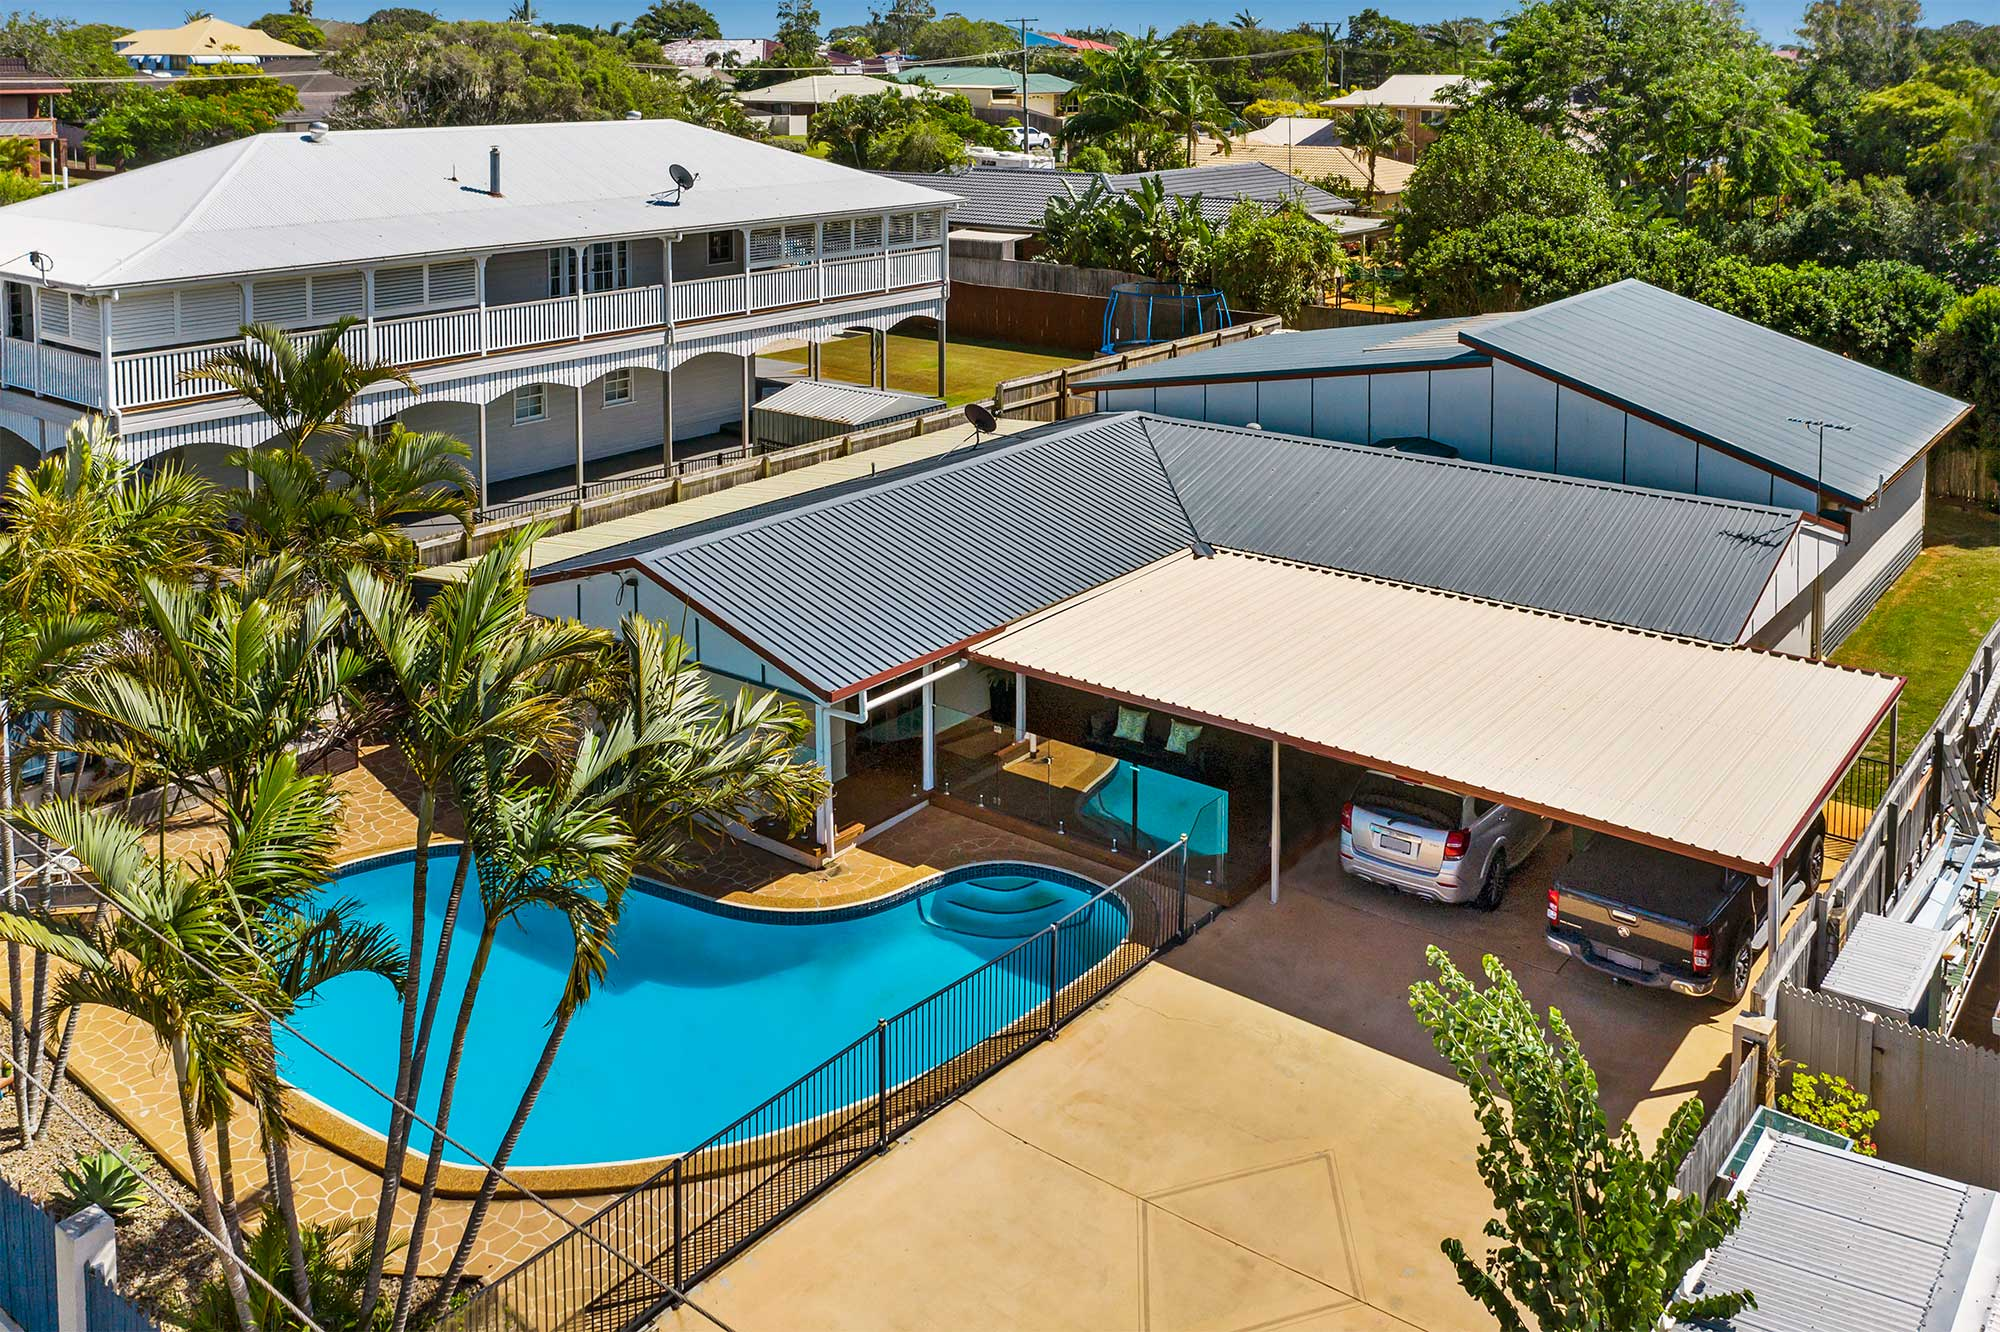 Drone photography of home for sale at Victoria Point highlighting the swimming pool area